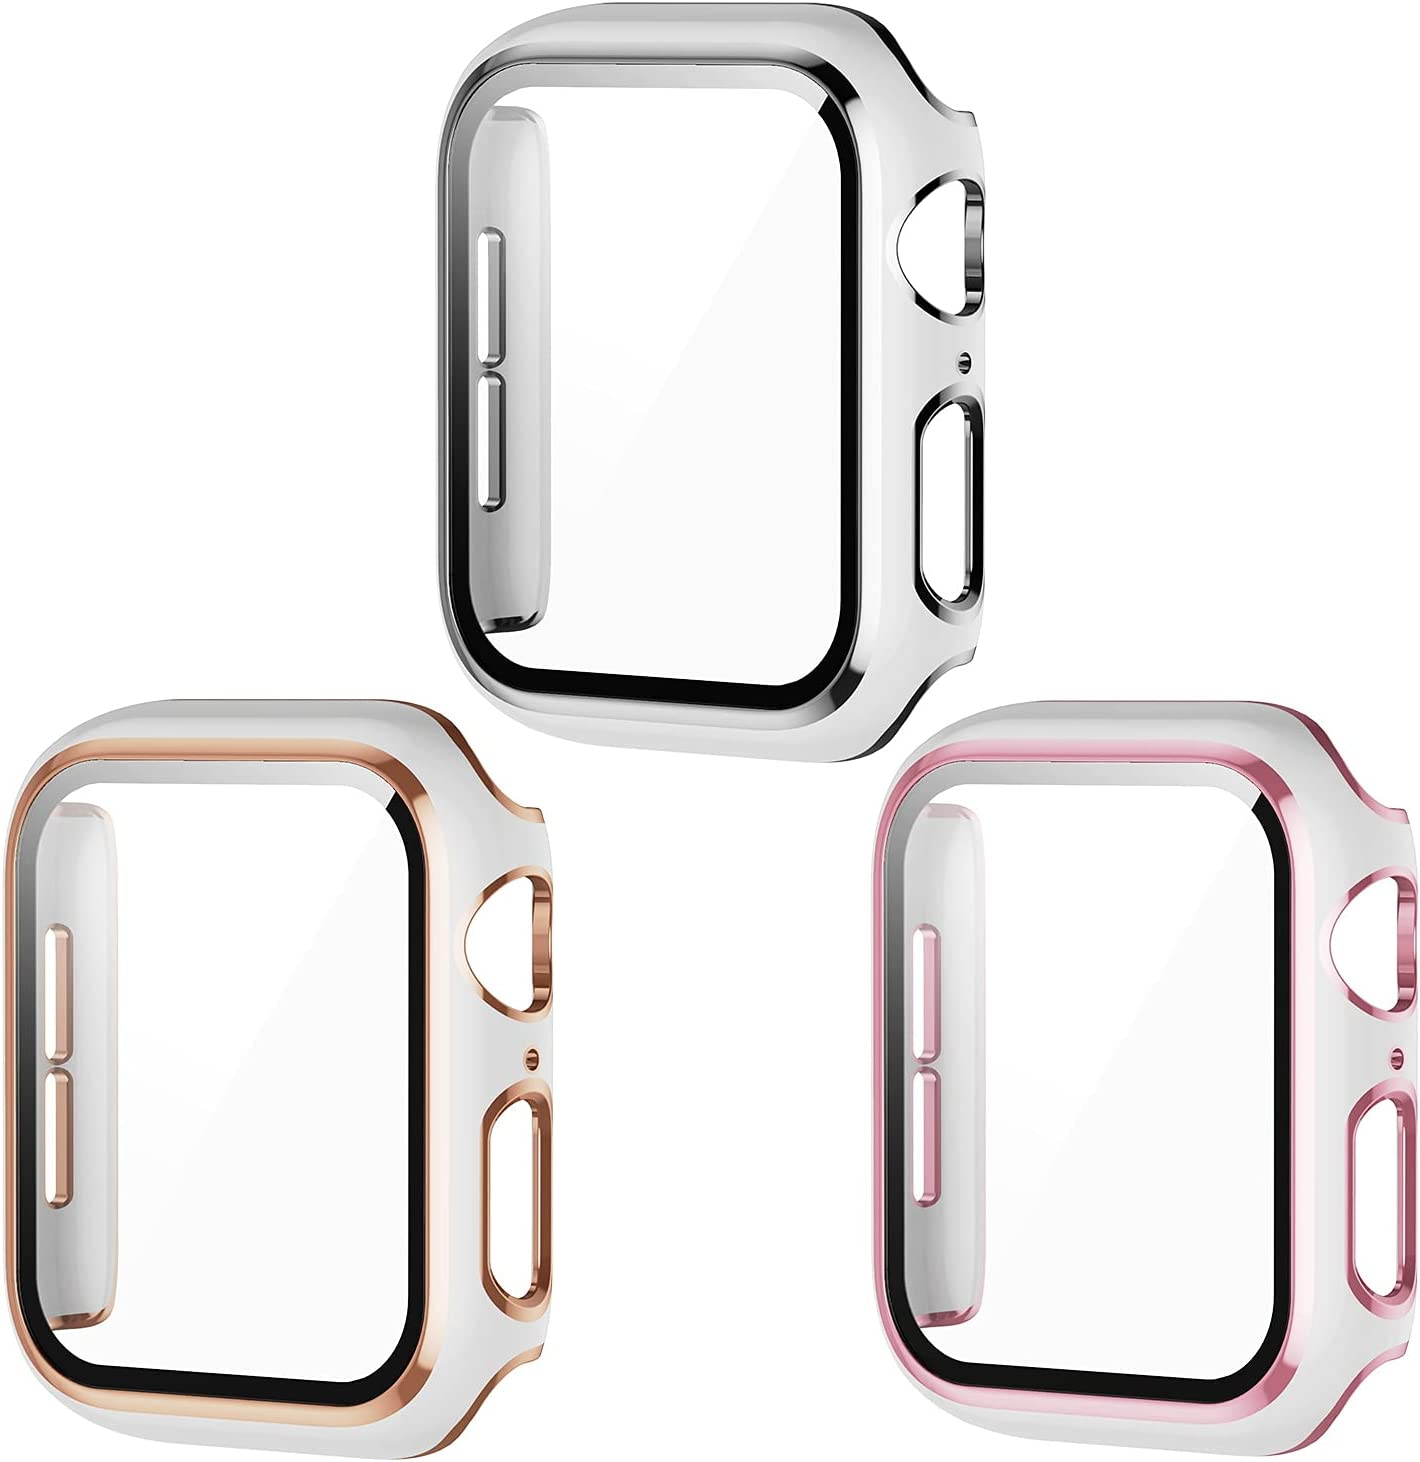 [3 Pack] AISIBY Case Compatible with Apple Watch Series 3/2/1 38mm Case with Tempered Glass Screen Protector Full Coverage HD Ultra-Thin Unbreakable Cover Compatible with iWatch 38mm(White Bumper)